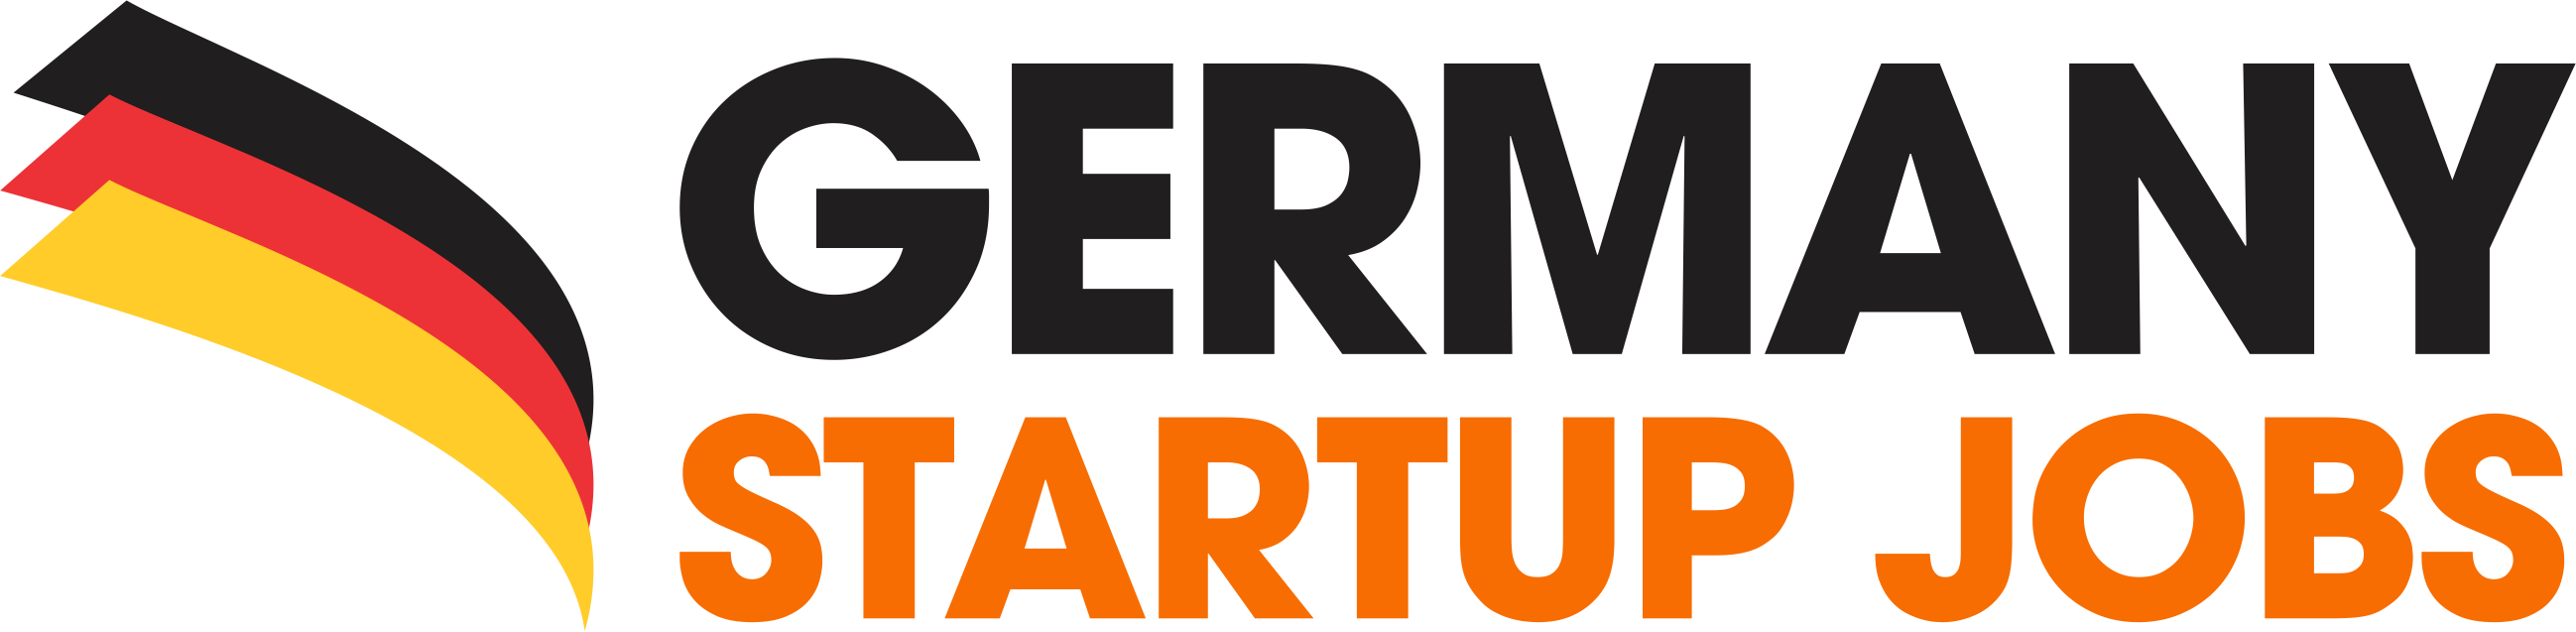 startup jobs find jobs in berlin germany deutschland